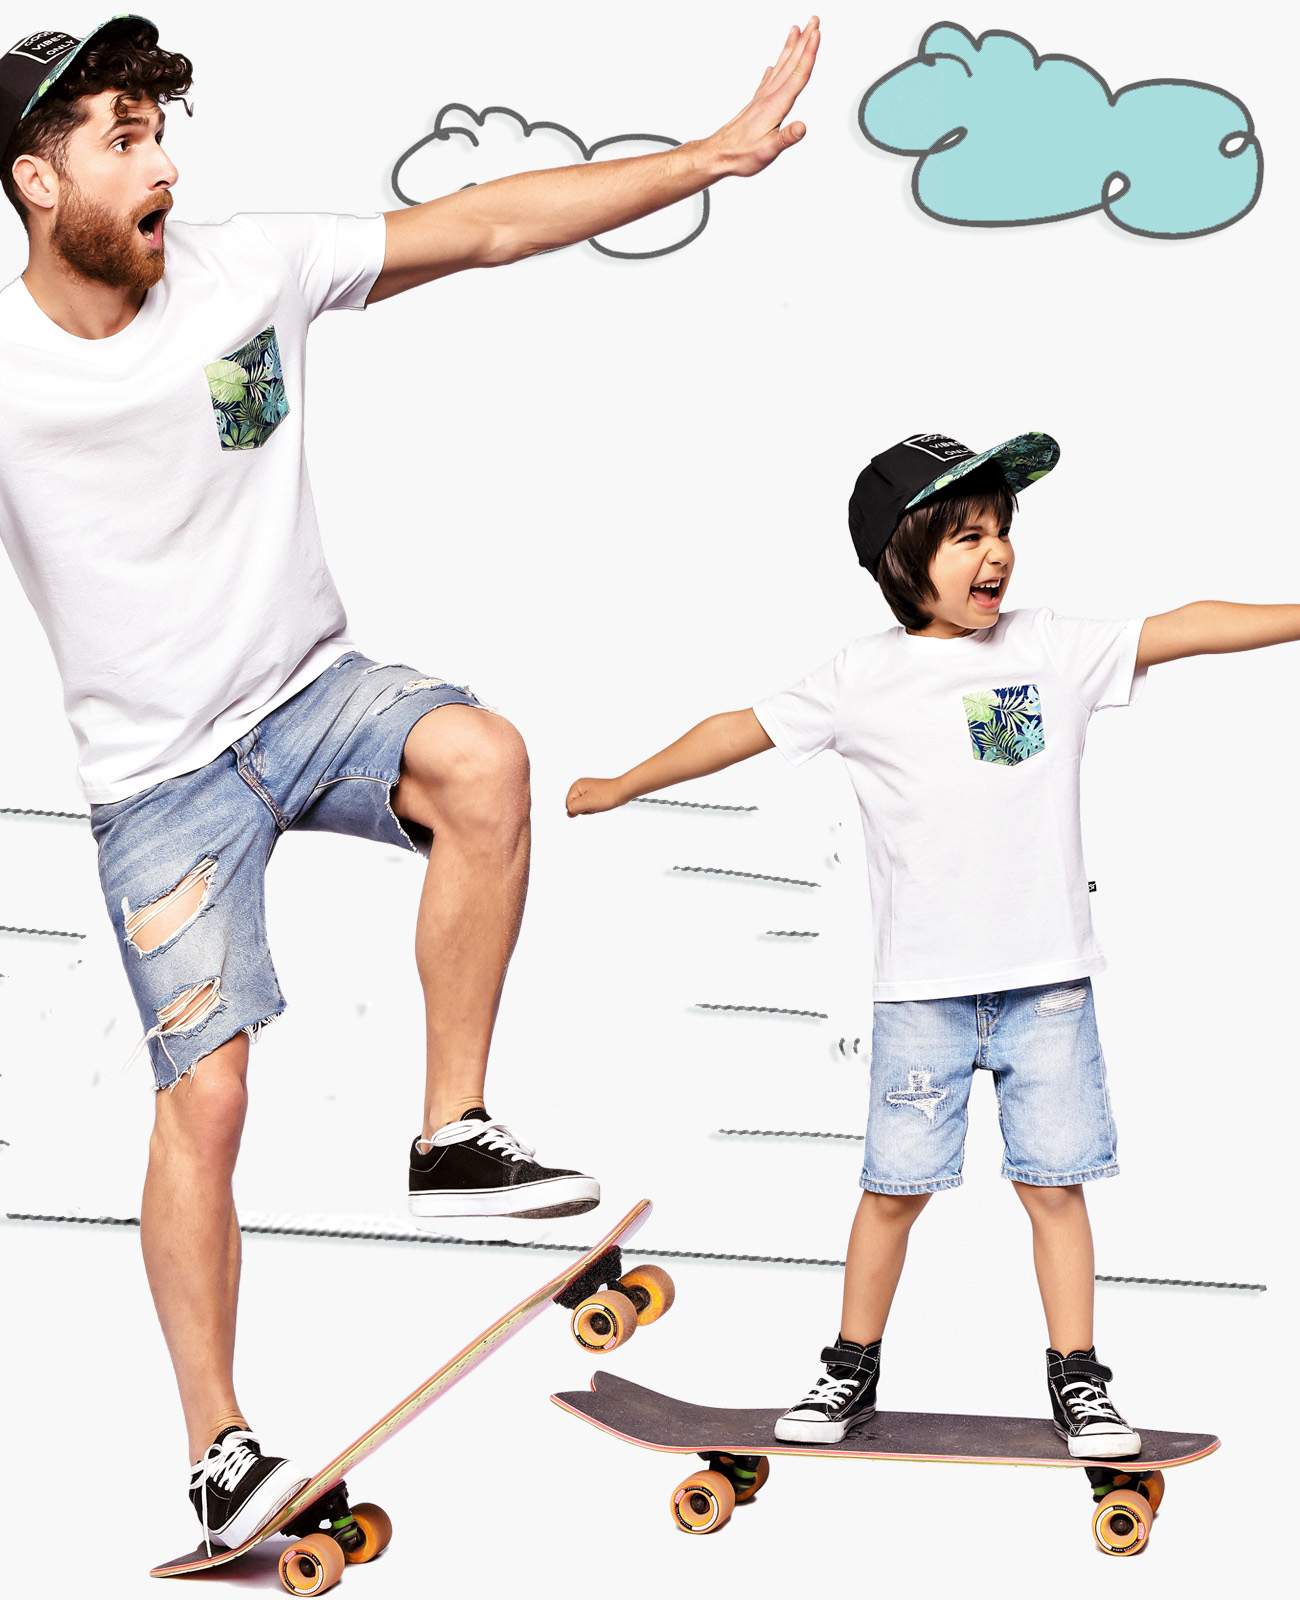 Dad and son having fun on skateboards in matching tees